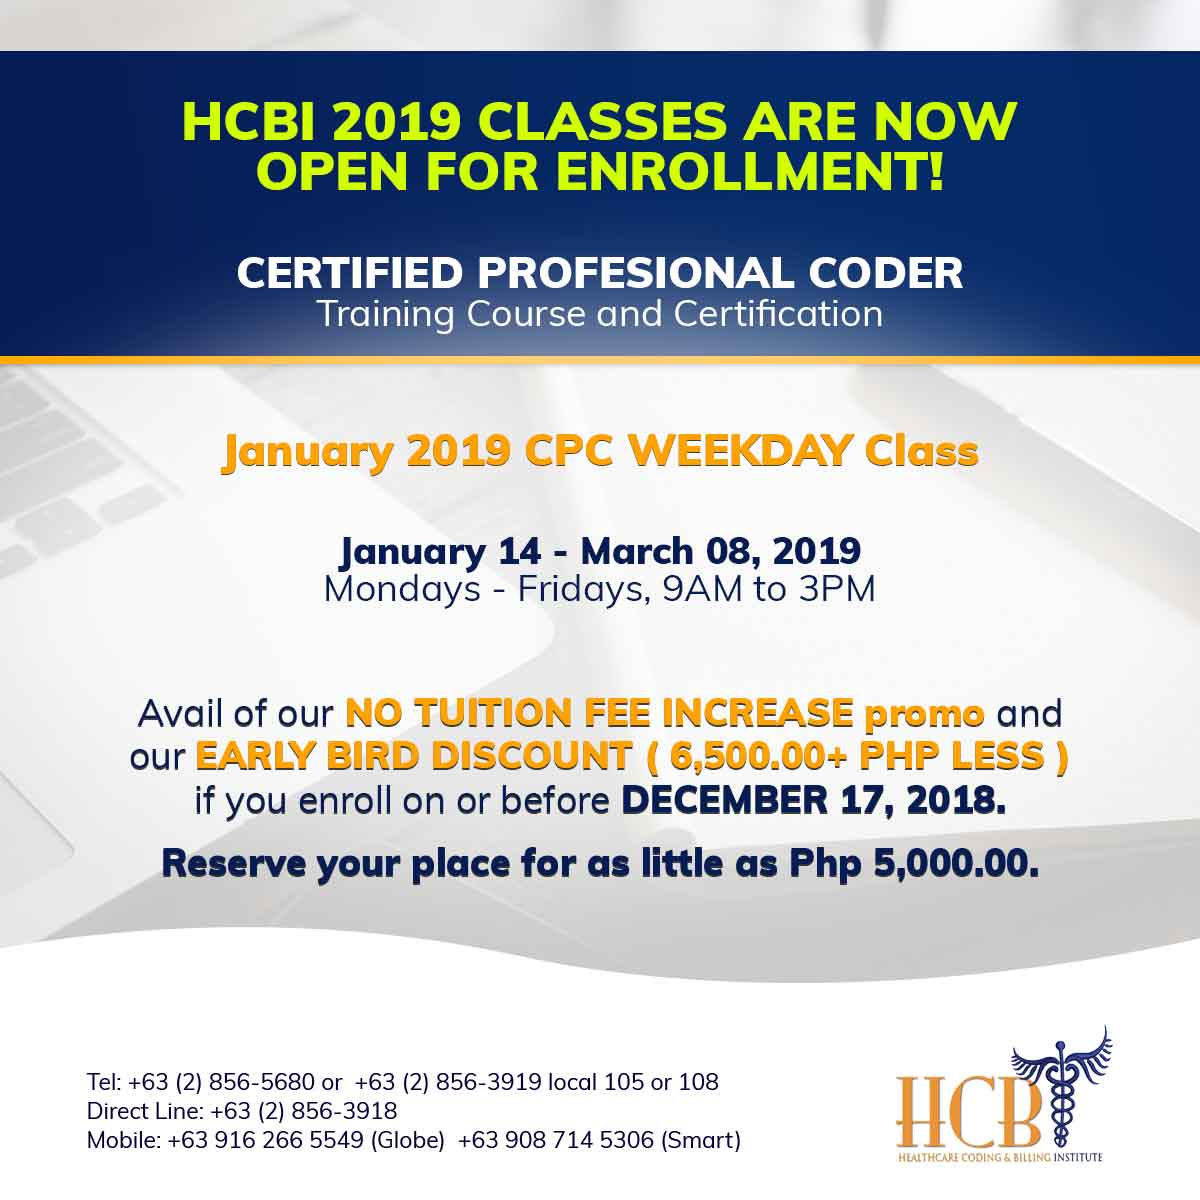 January-2019-CPC-Weekday-Class-Post, hcbi